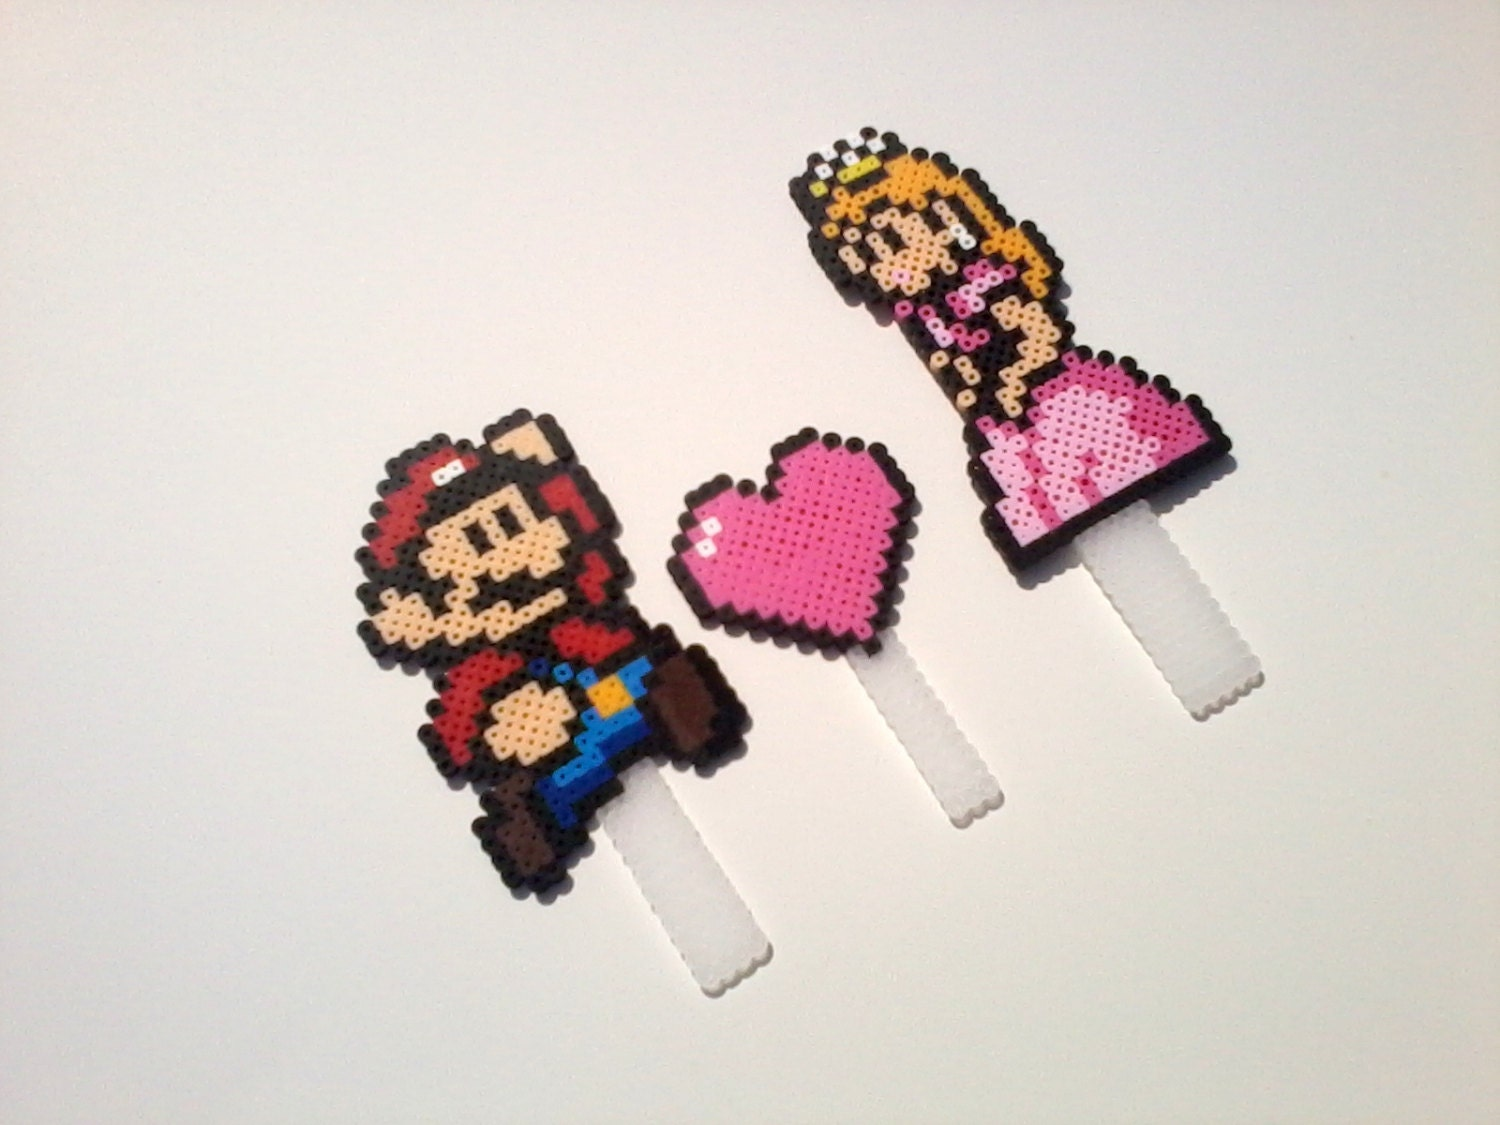 Cake Toppers - Mario and Princess Peach Wedding Cake Toppers